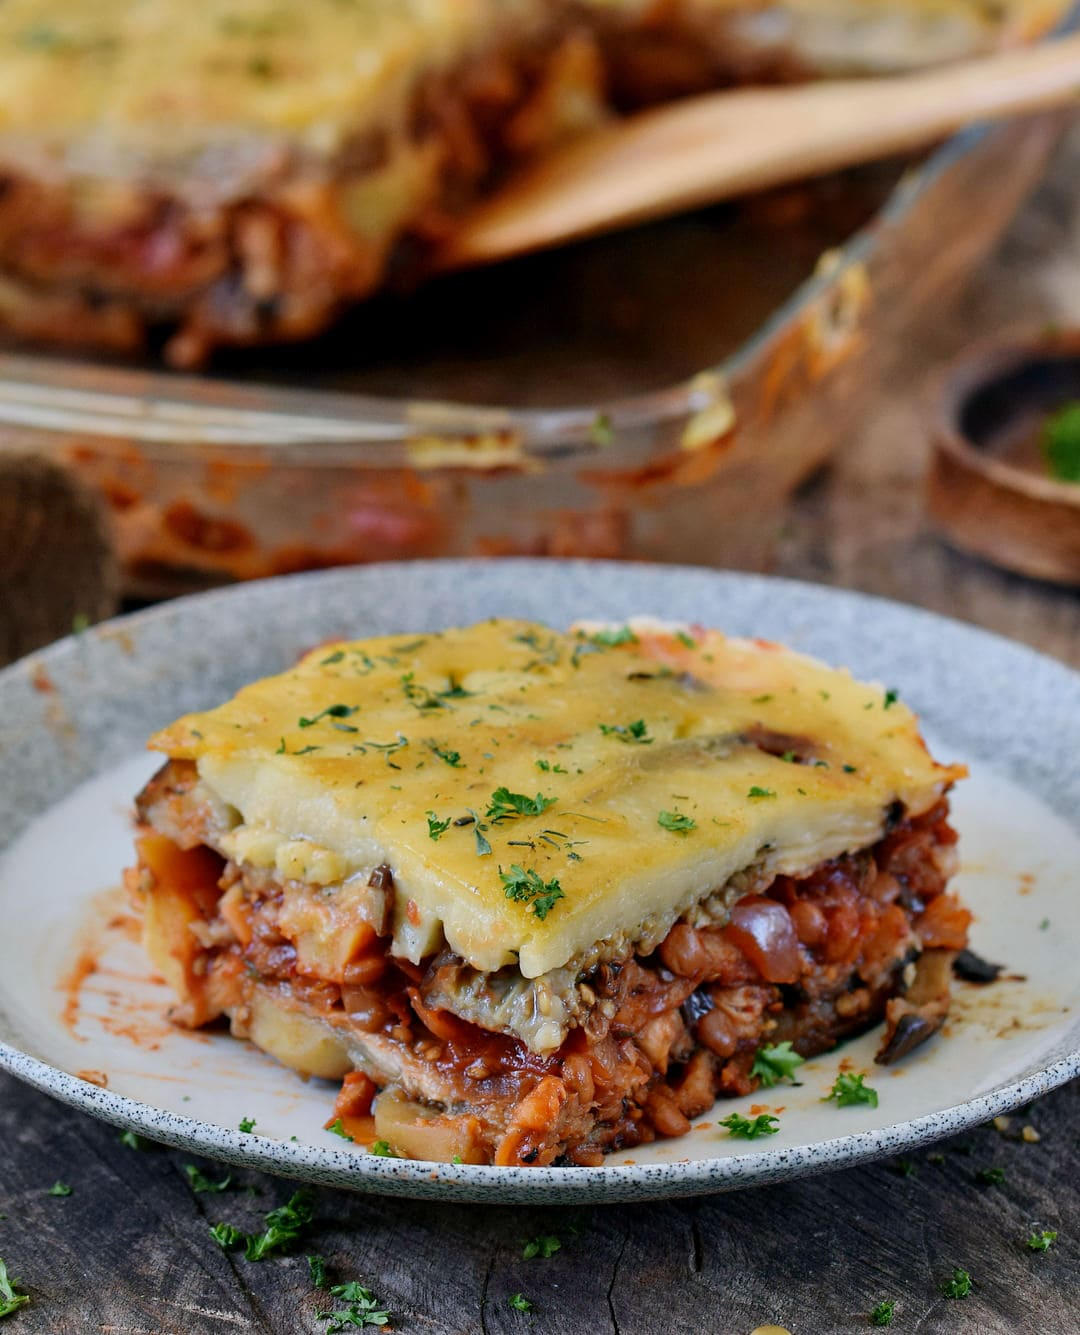 vegan moussaka on a plate